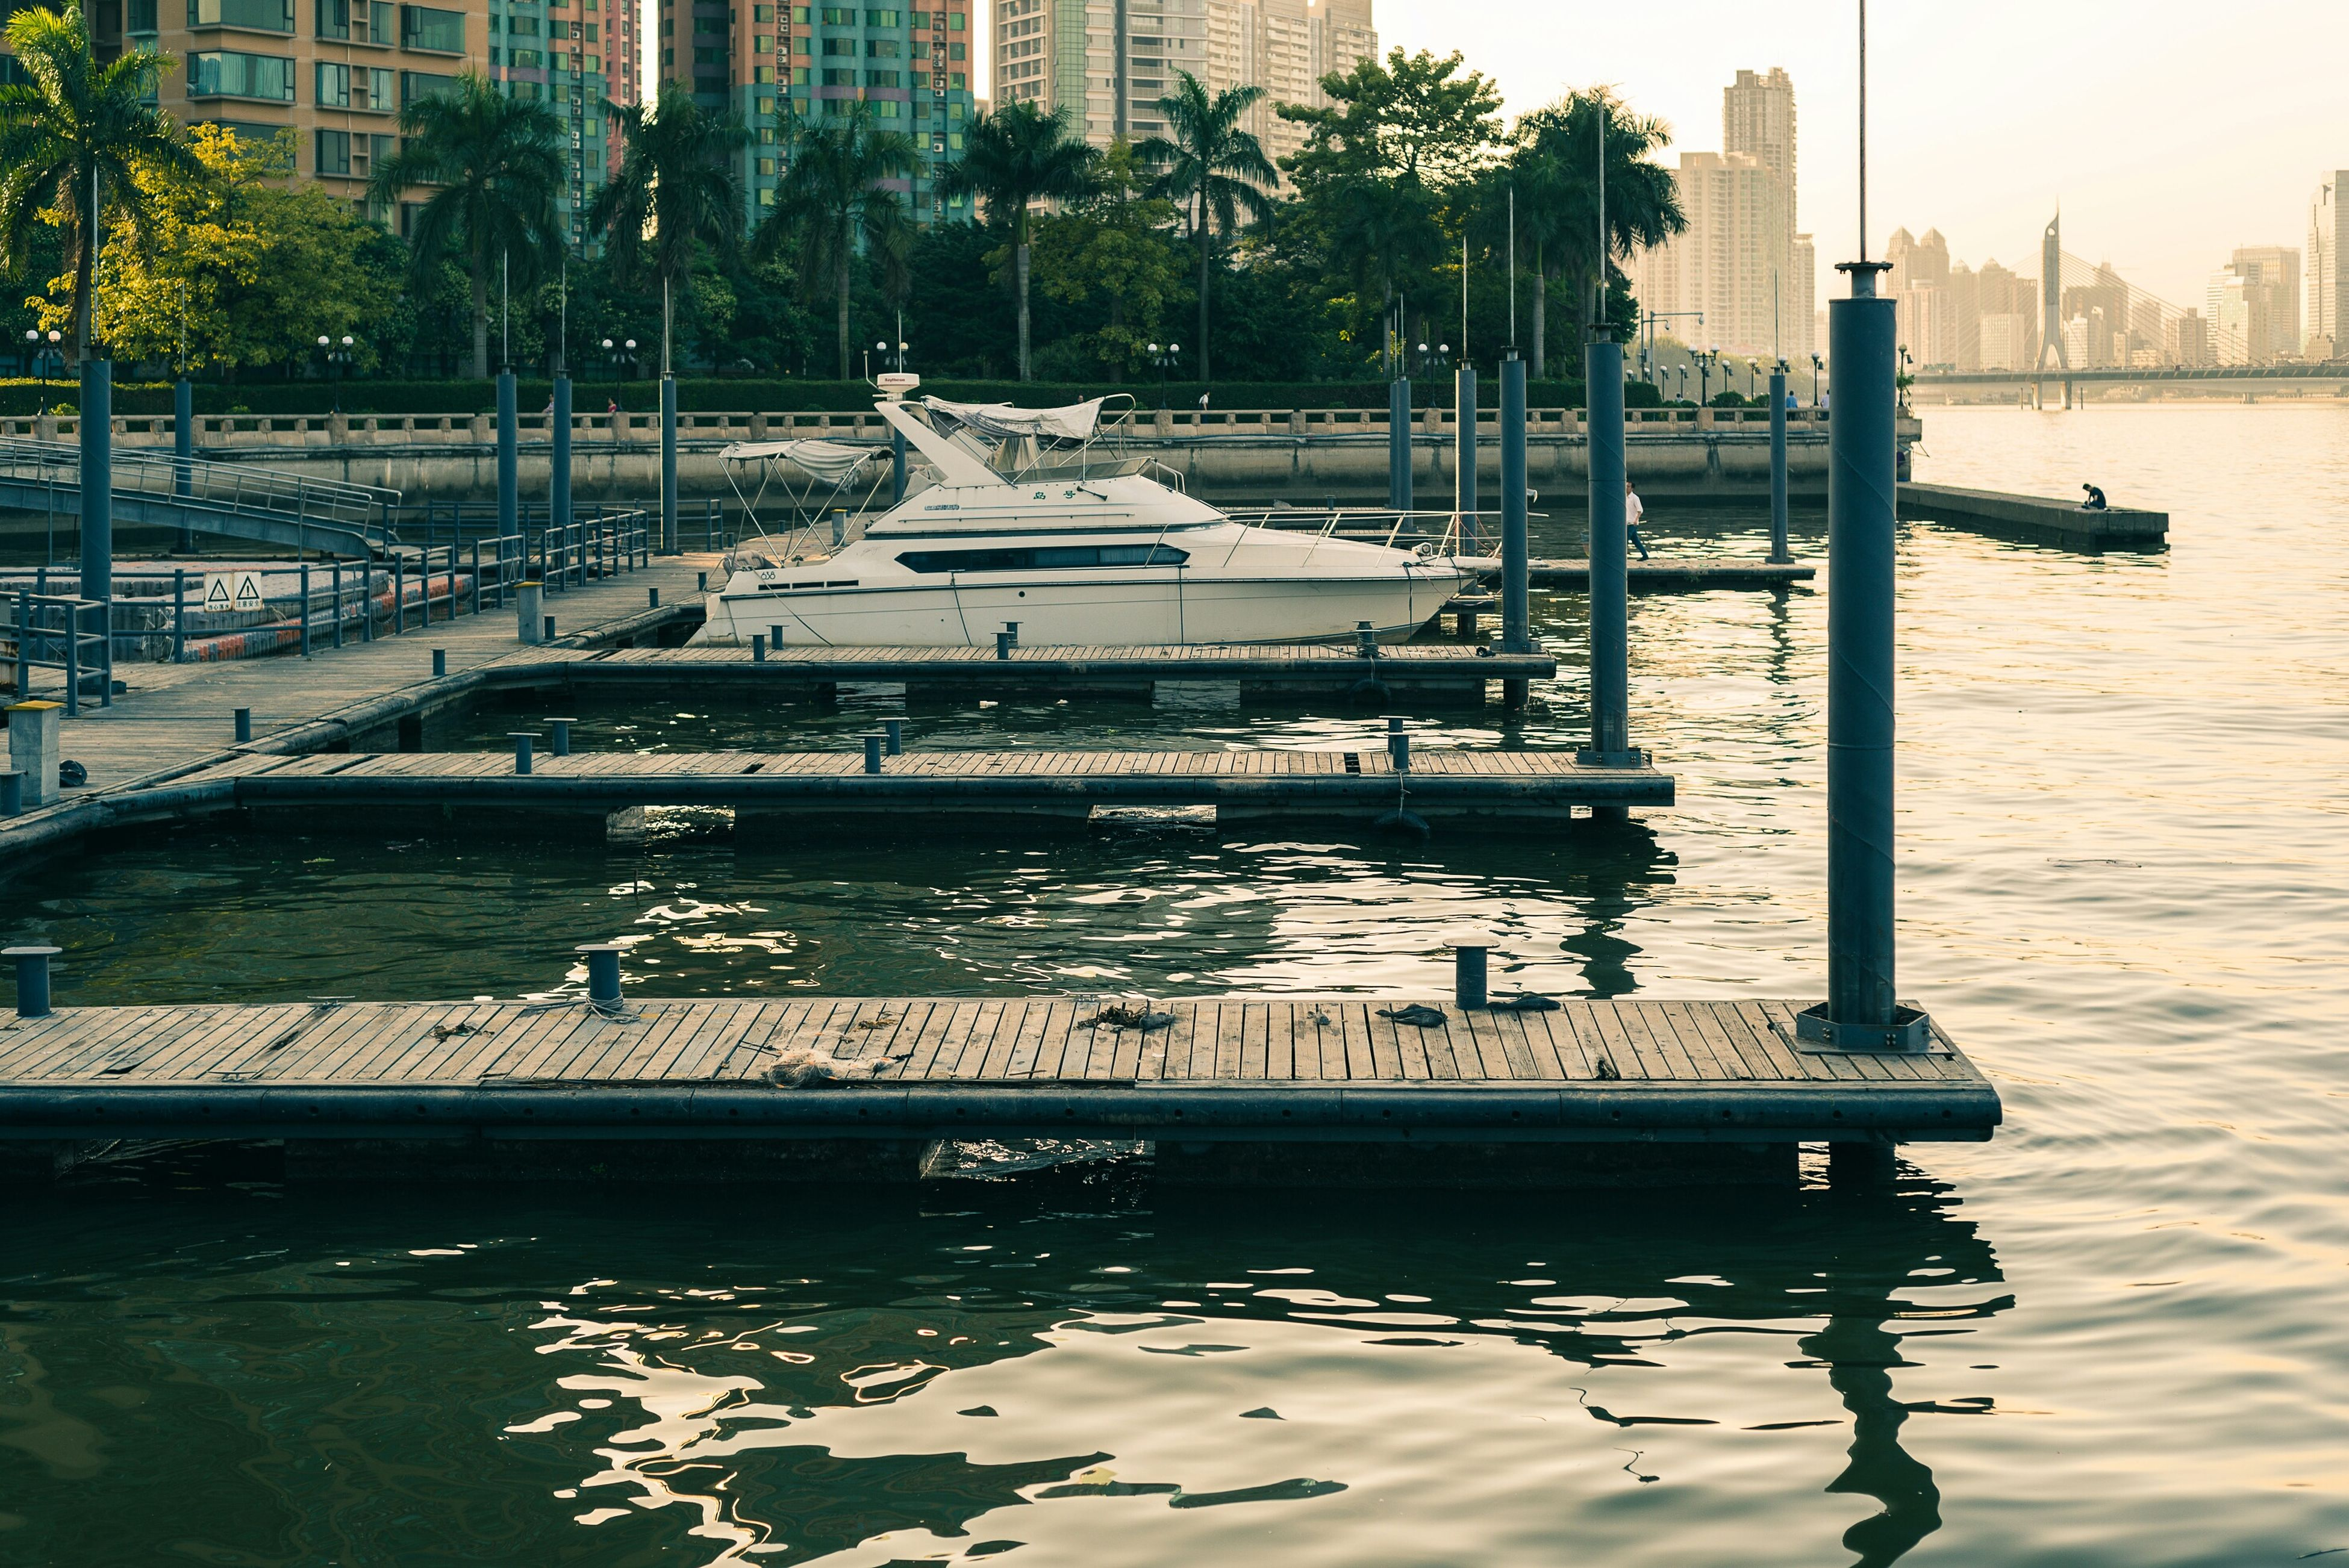 water, bird, building exterior, built structure, architecture, animal themes, city, animals in the wild, wildlife, tree, transportation, river, incidental people, reflection, waterfront, mode of transport, nautical vessel, day, outdoors